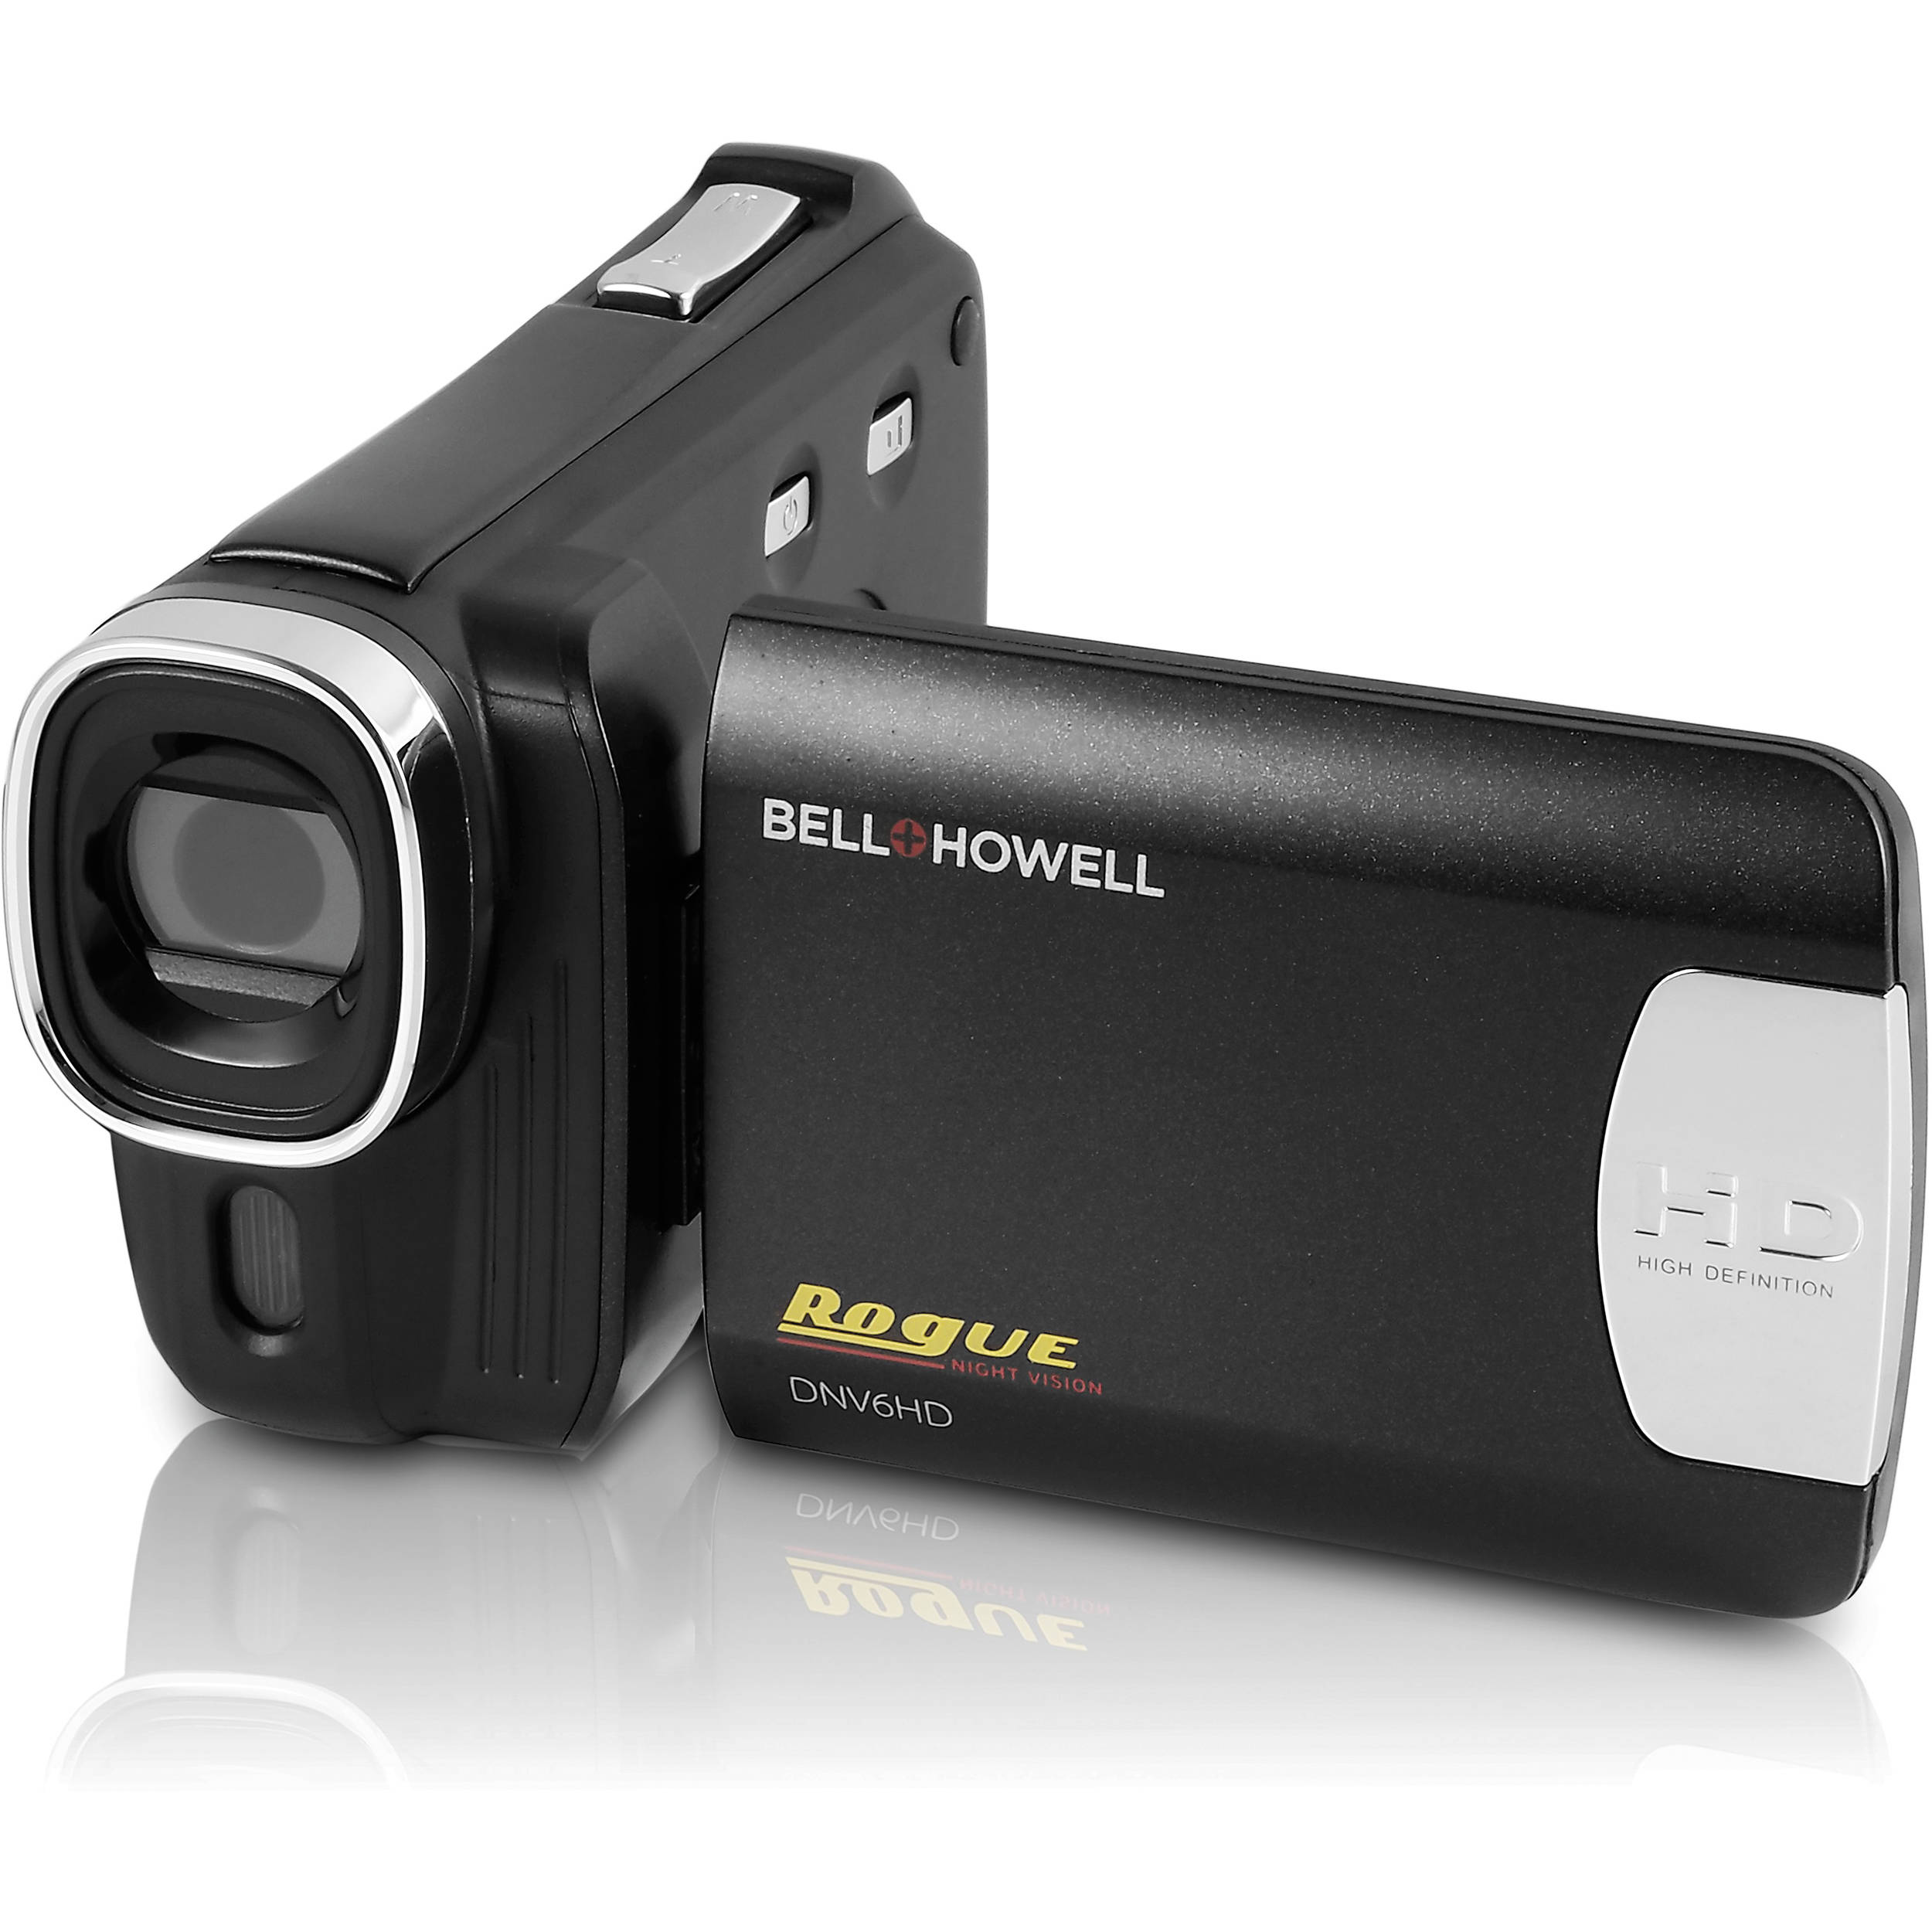 Bell & Howell Rogue DNV6HD 1080p HD Night Vision DNV6HD-BK B&H